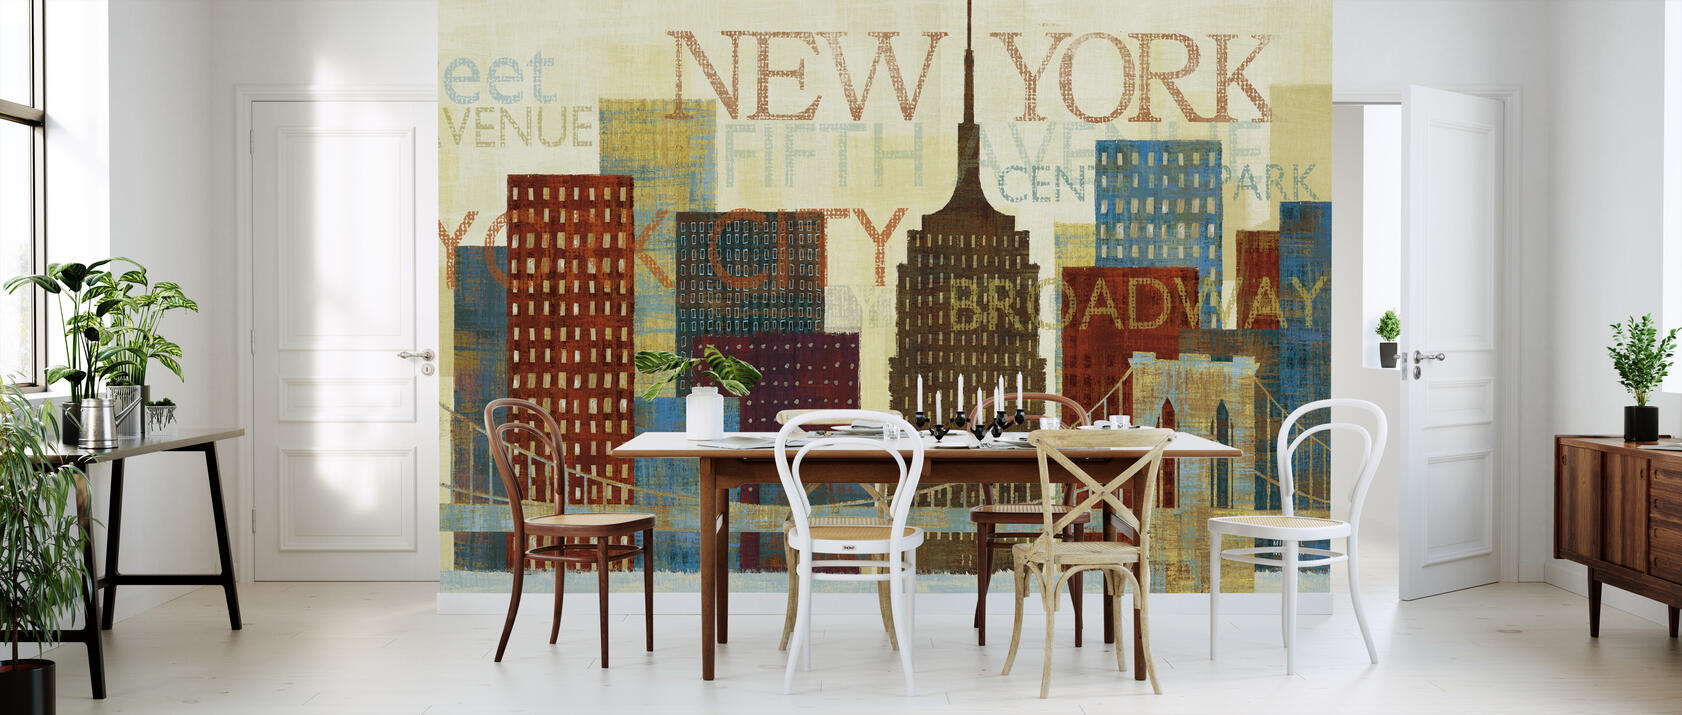 hey new york fototapete nach ma photowall. Black Bedroom Furniture Sets. Home Design Ideas